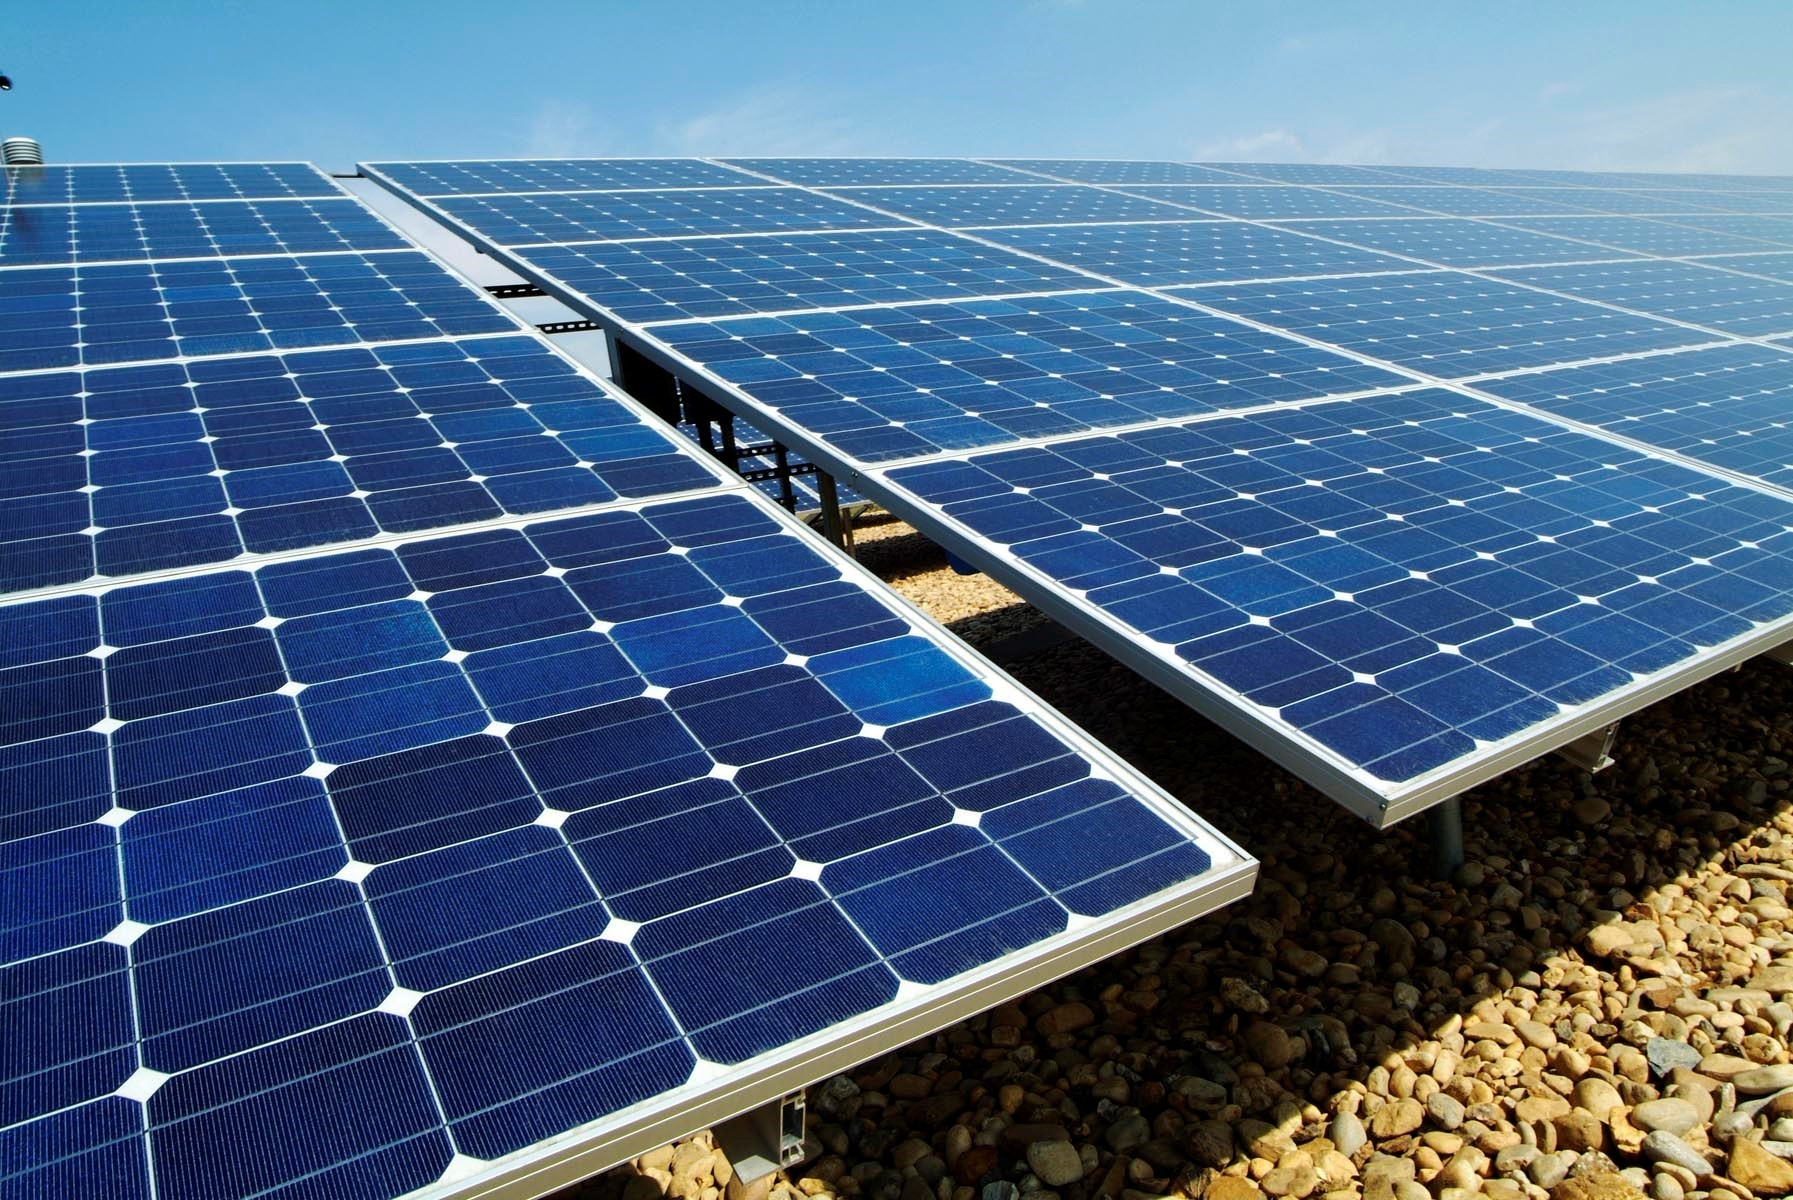 Large solar farm plan for Trowbridge goes public